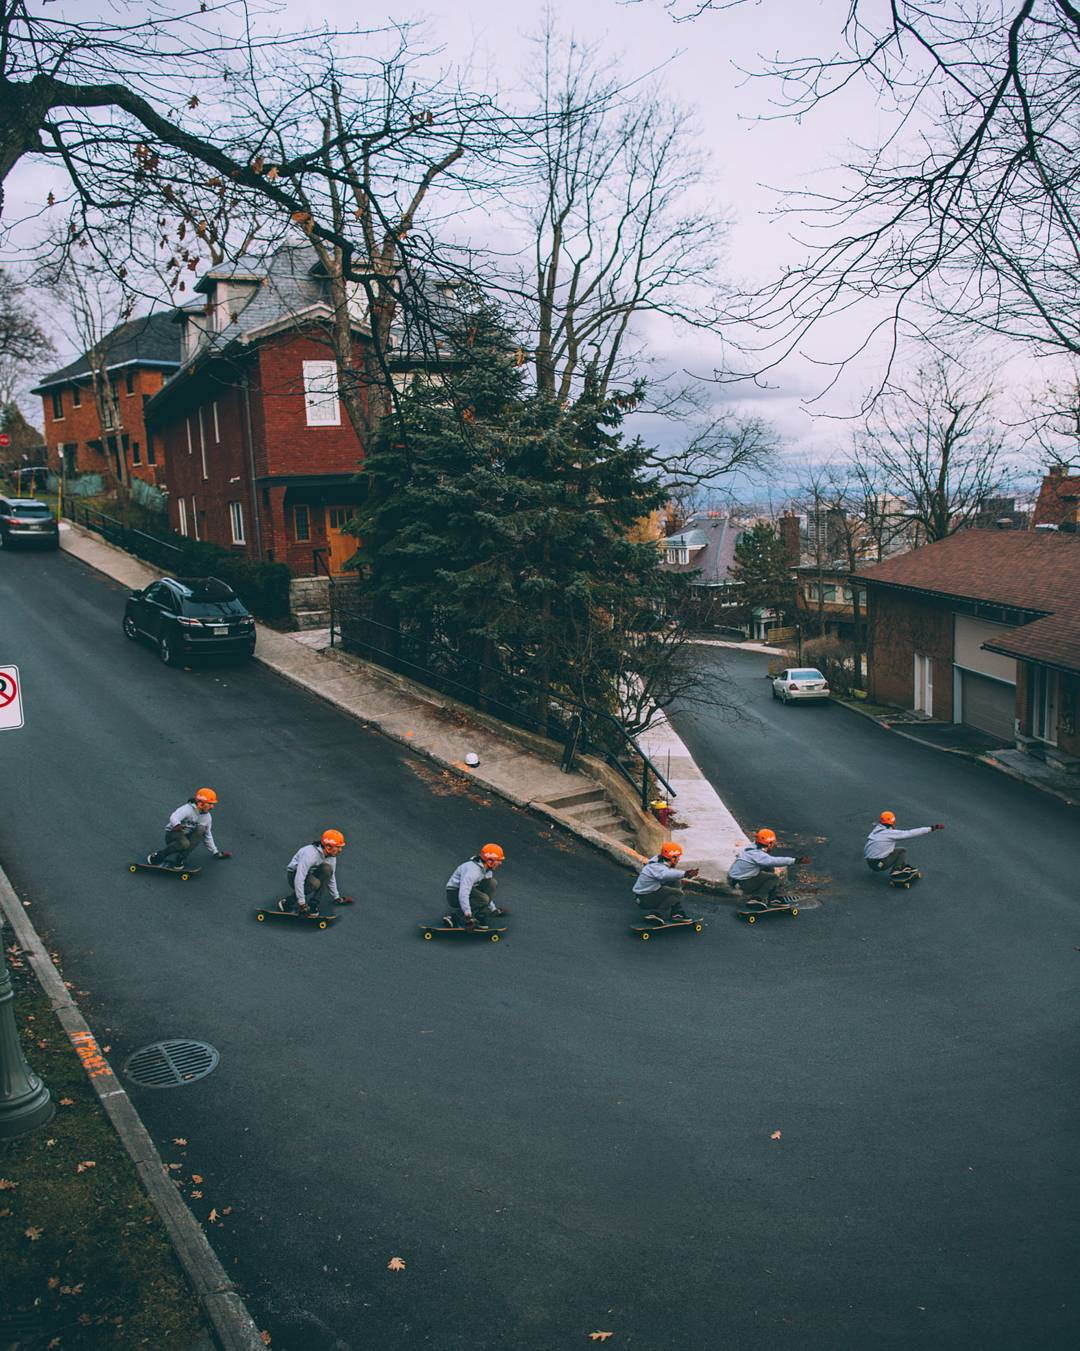 #OrangatangAmbassador @charlesouimet has also perfected his cloning machine.  Here we see generation 1 Charles lead generations 5-9 through a urban hairpin in Montreal.  Gotta teach them clones proper lines or else they'll never learn!  Photo:...